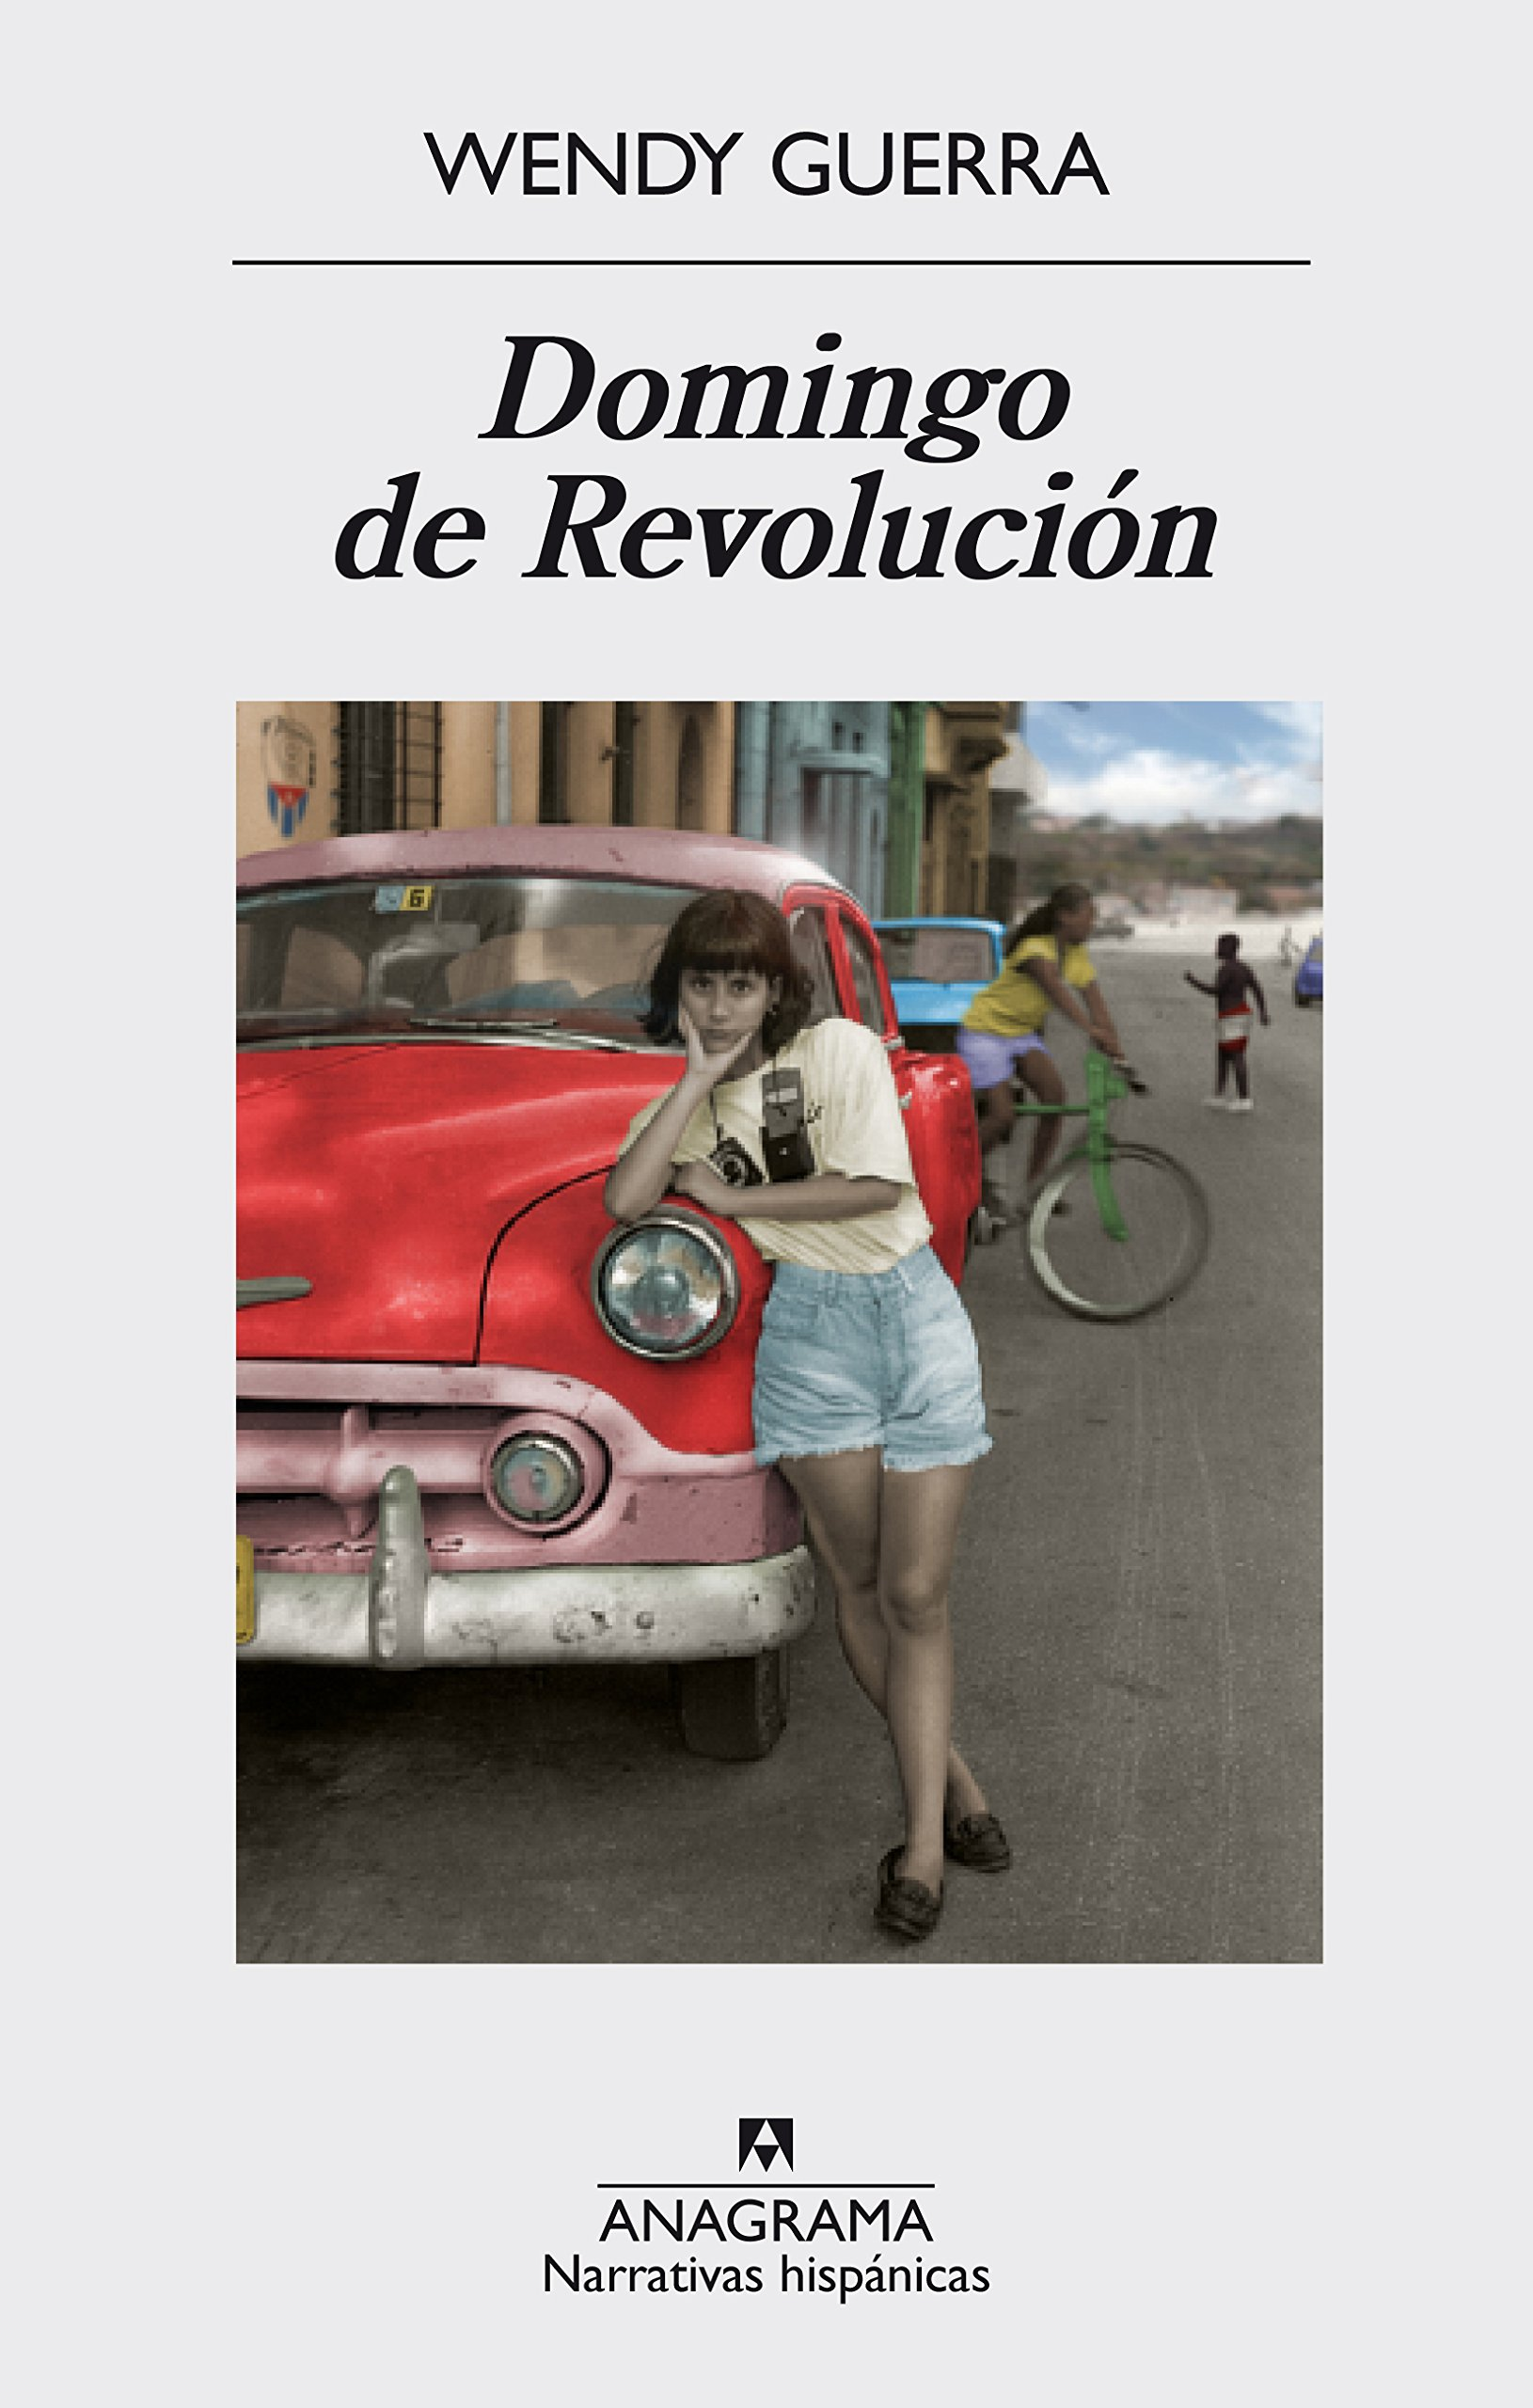 Domingo de Revolucion (Spanish Edition): Wendy Guerra: 9788433998101: Amazon.com: Books